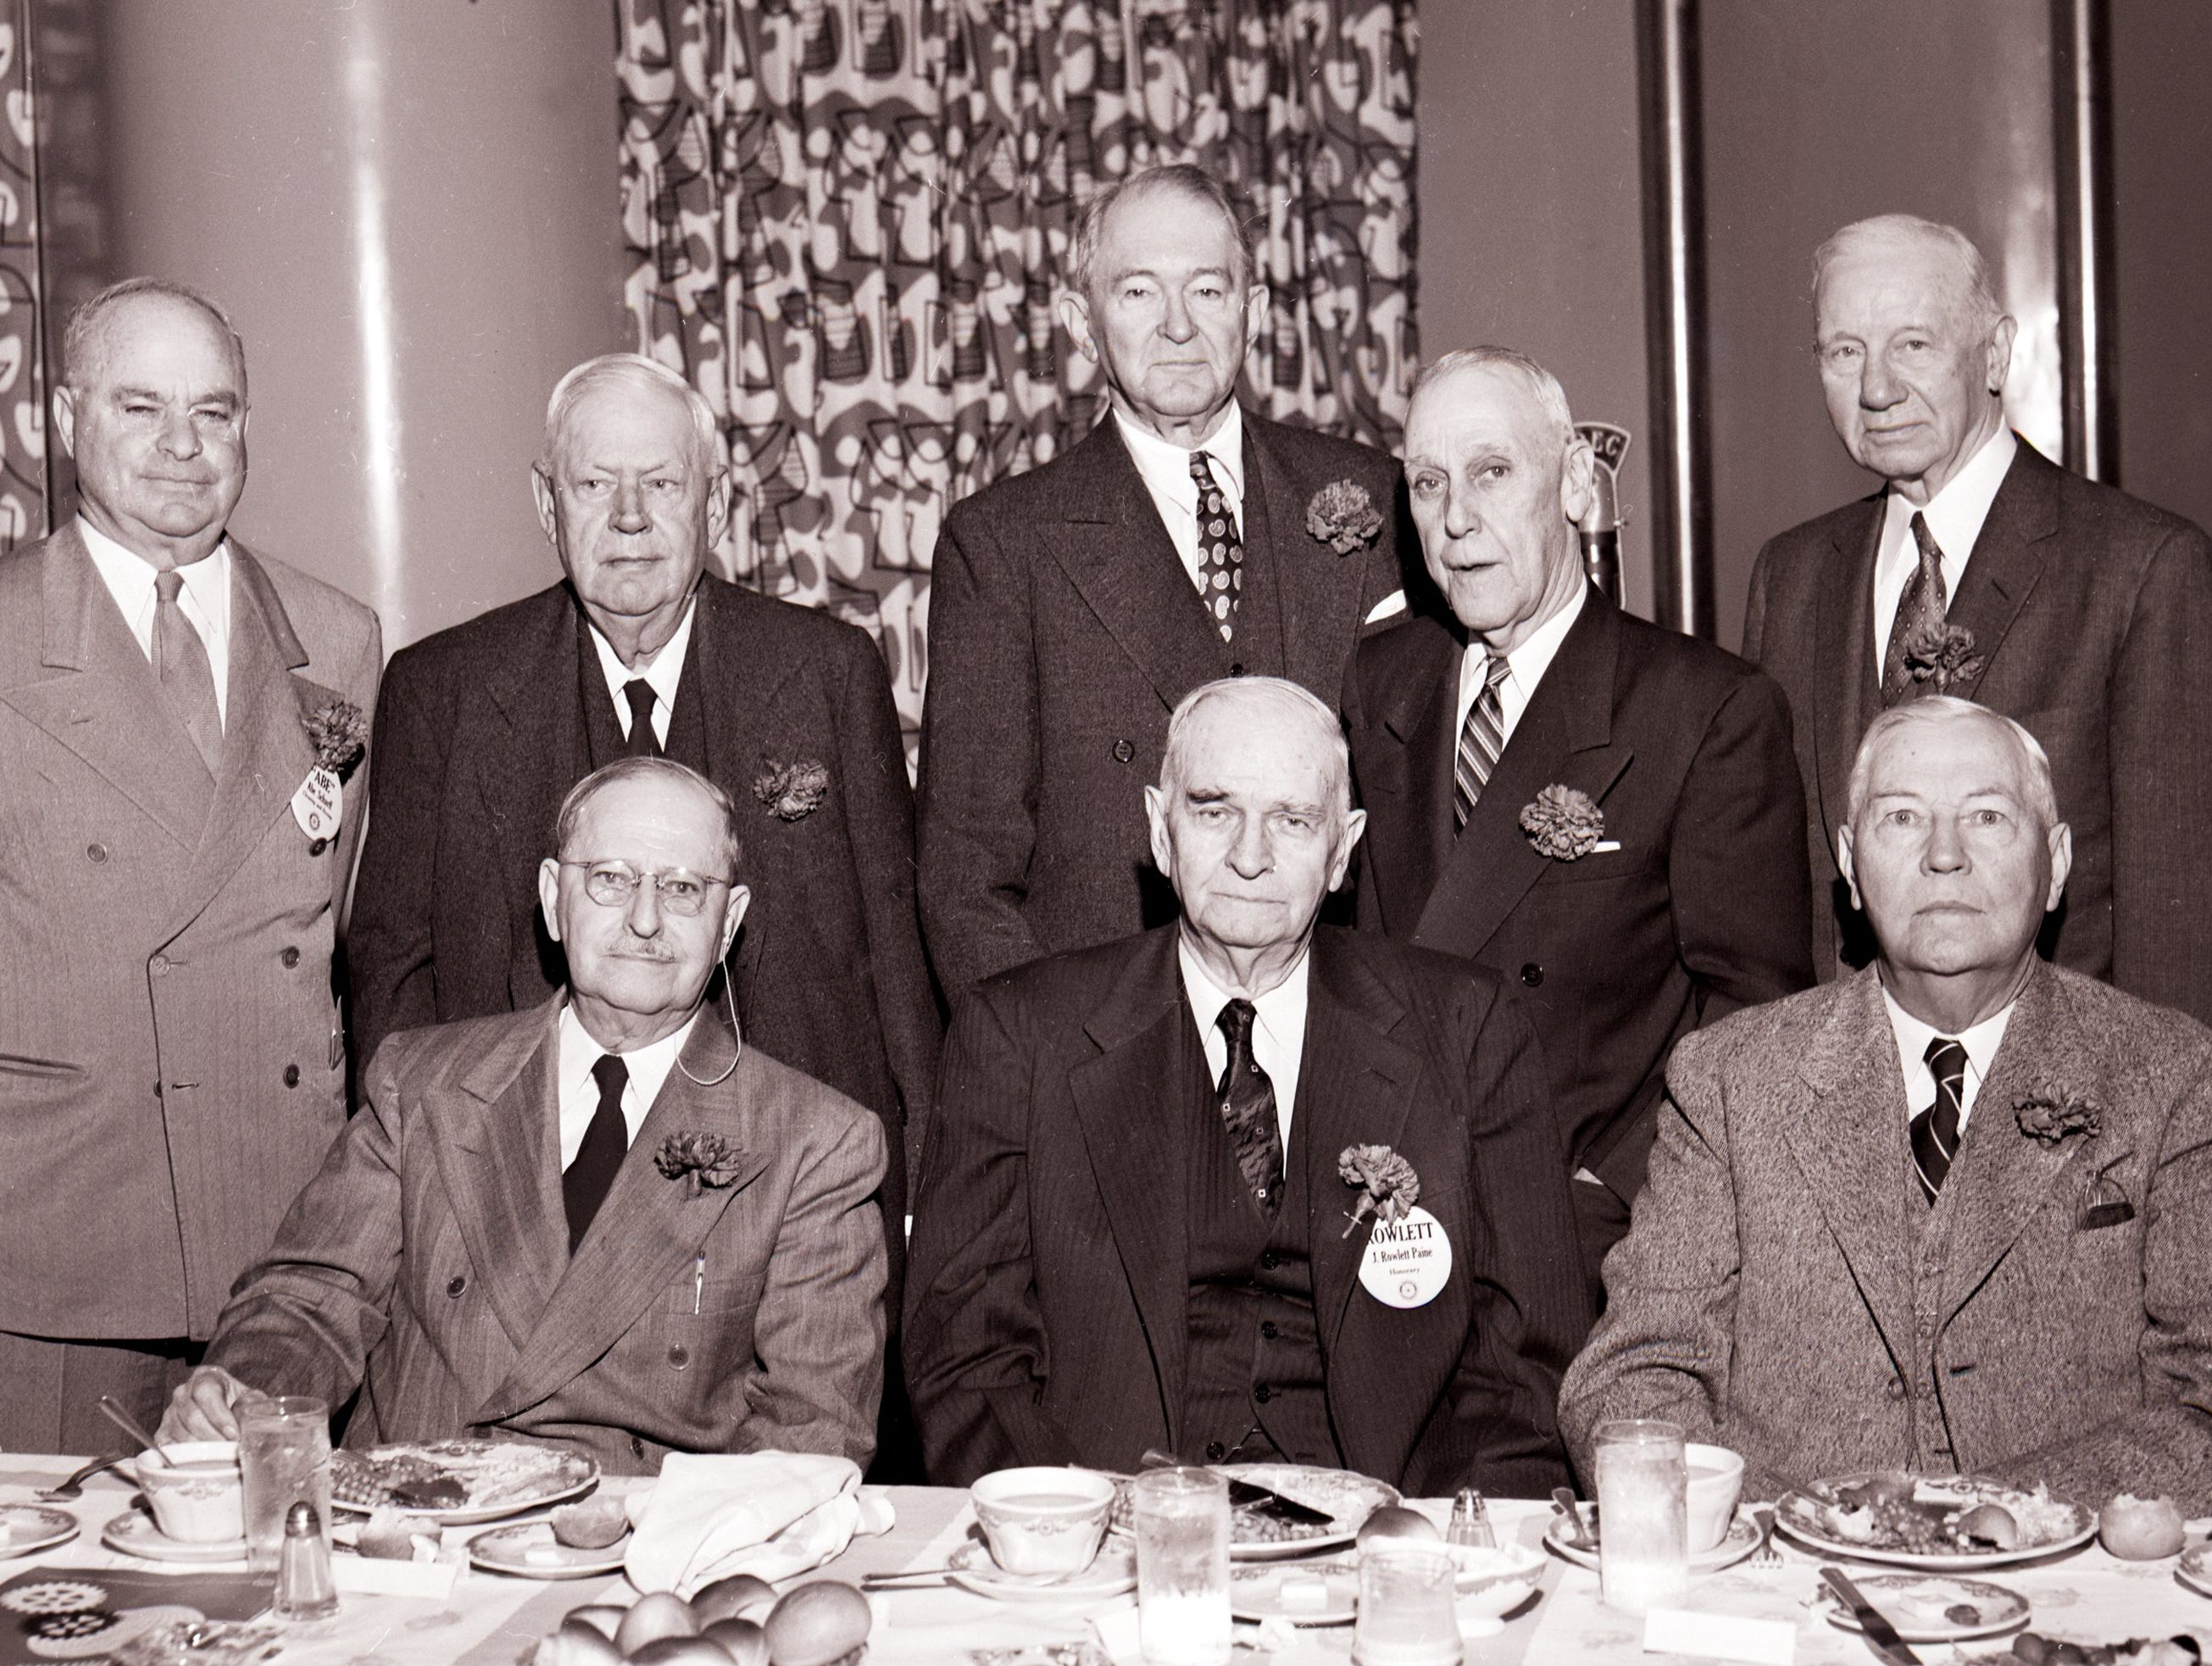 Seven charter members, and a member with a 34-year record of perfect attendance, were honored the first week of February 1955 as the Rotary Club observed its 41st birthday.  Charter members are (Seated from Left) E.R. Livermore, Rowlett Paine and W.R. King.  (Standing from Left) Abe Scharff, Frank Flournoy (the man who always attends the meetings), John W. McClure, Robert Metcalf and Fred Boehme.